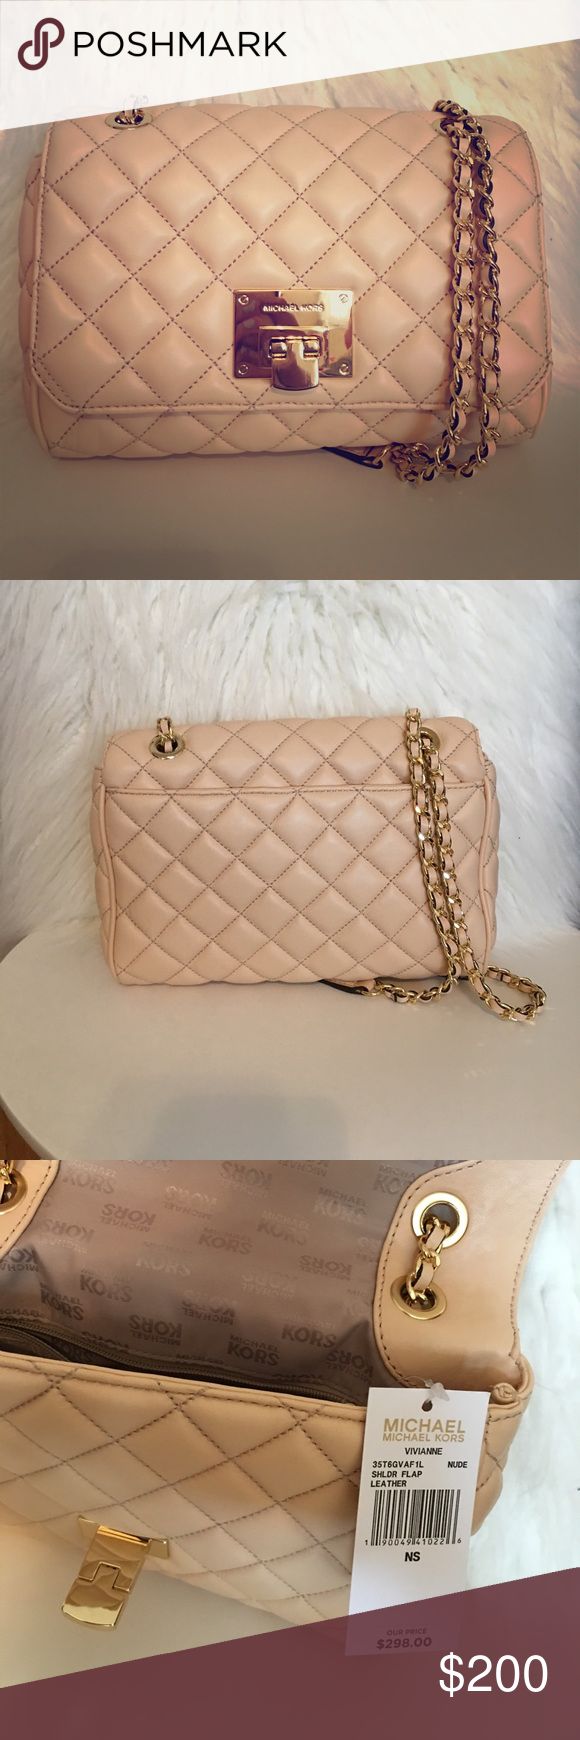 e07deaf3c967 Michael Kors Vivianne quilted flap handbag Gorgeous MK quilted flap  shoulder bag!